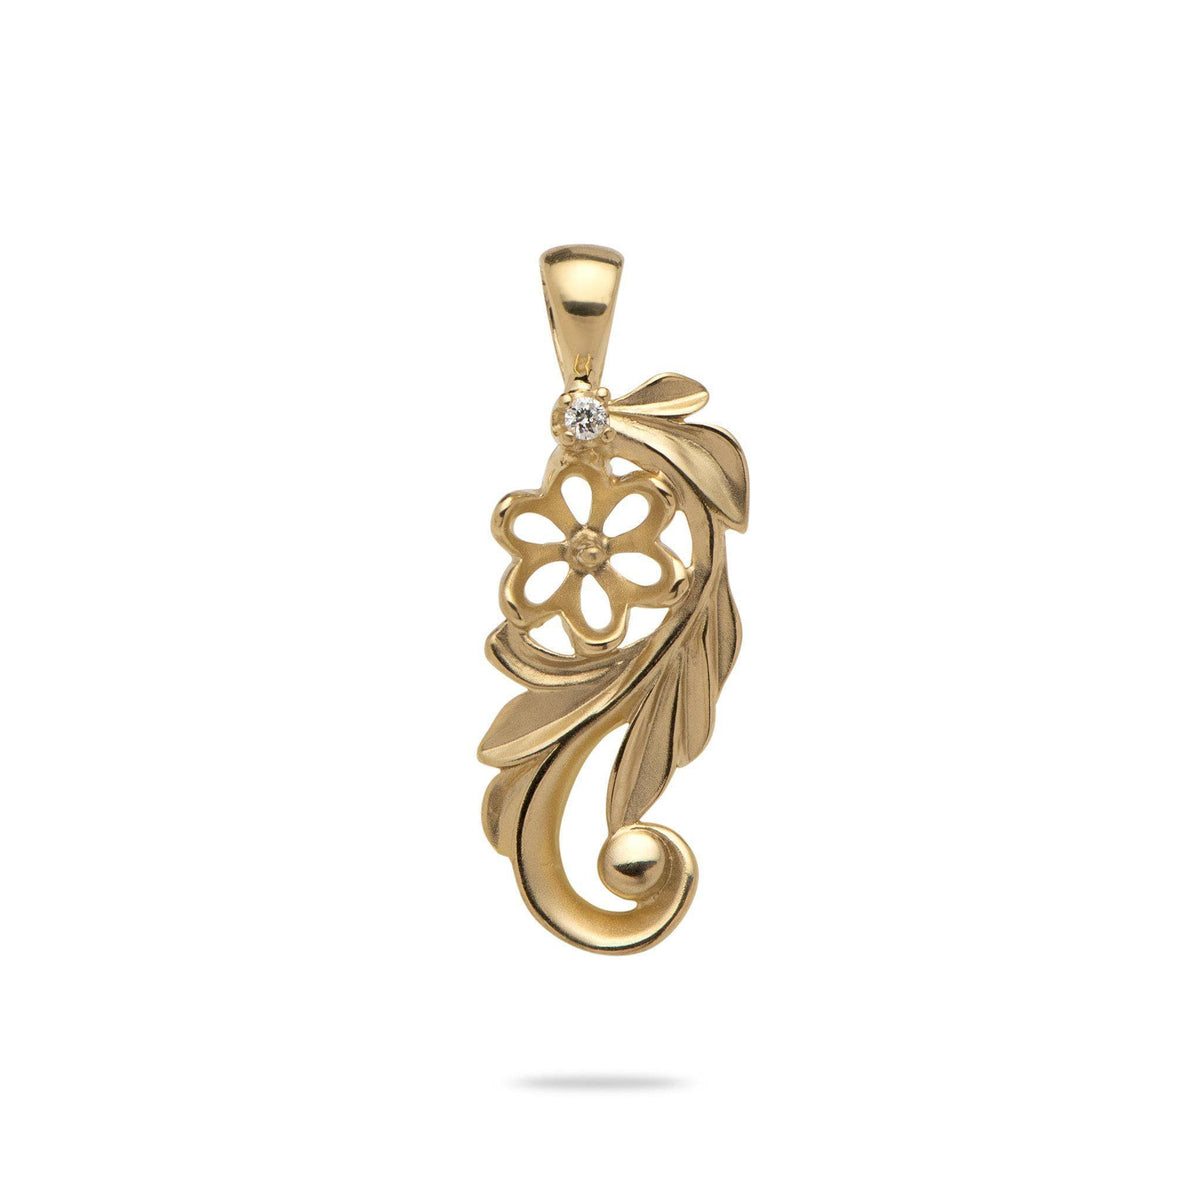 Maile Leaf Scroll Pendant Mounting with Diamond in 14K Yellow Gold - Maui Divers Jewelry